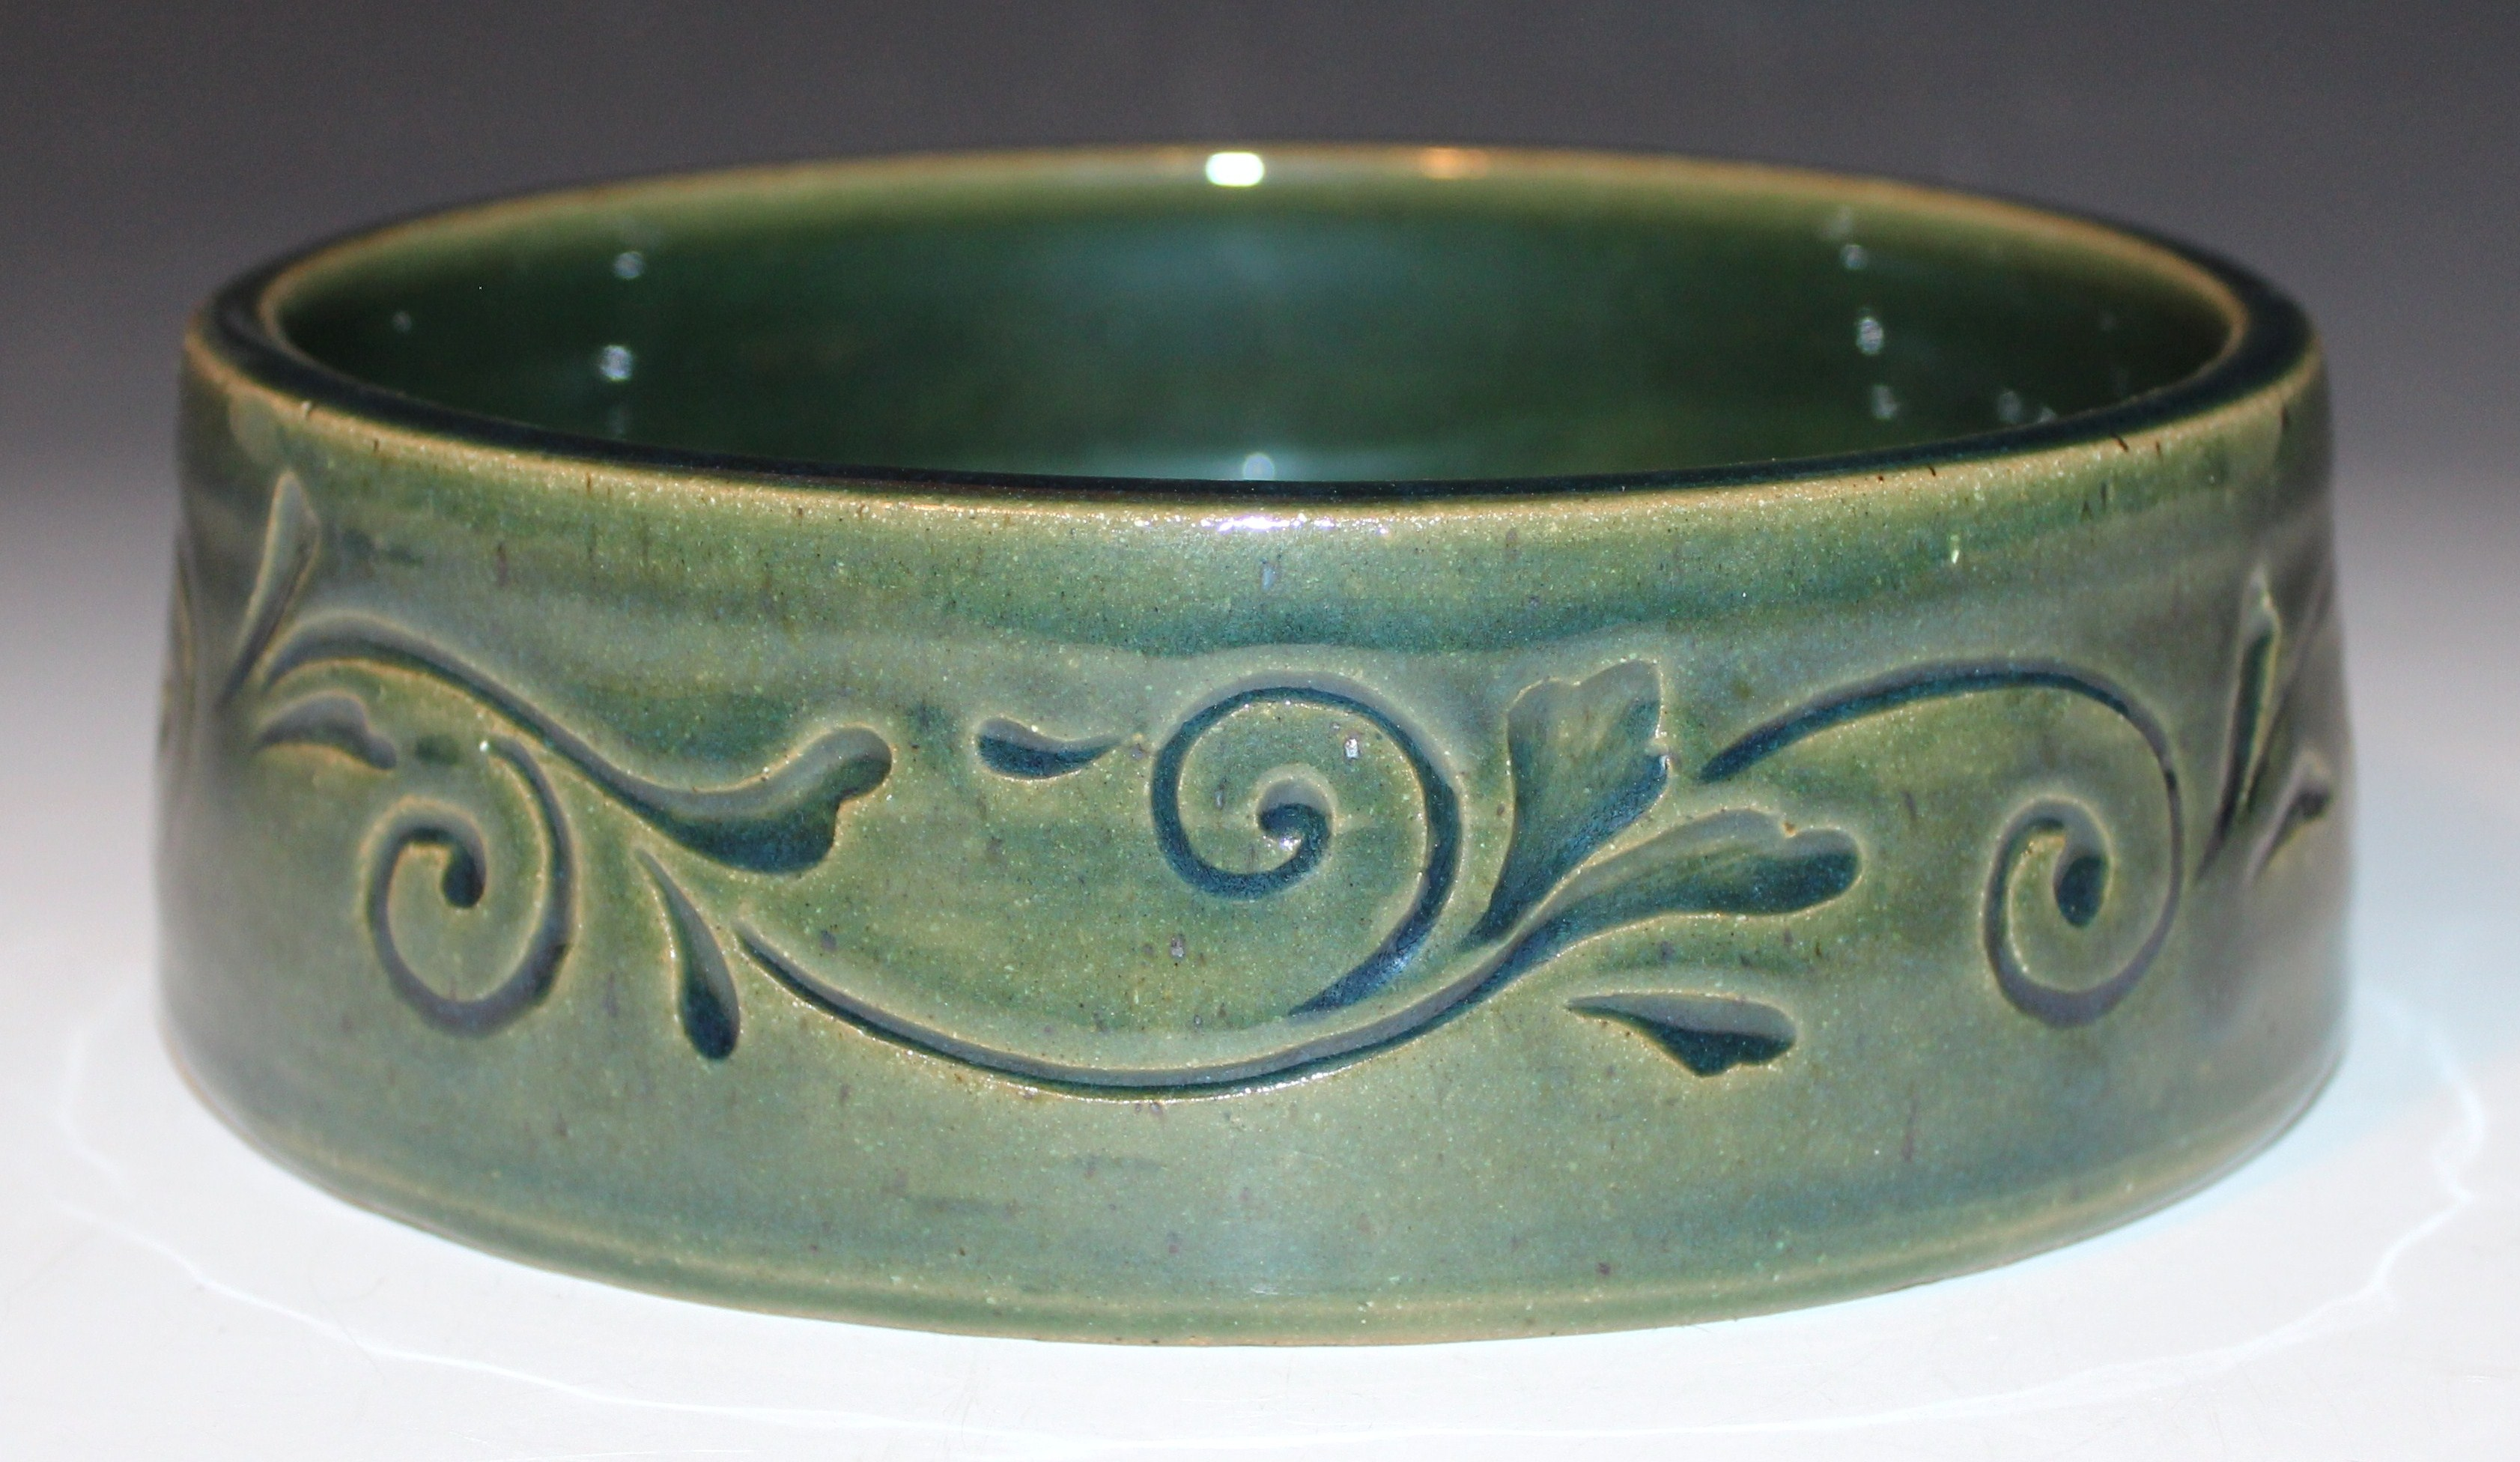 Swirling Vines Bowl